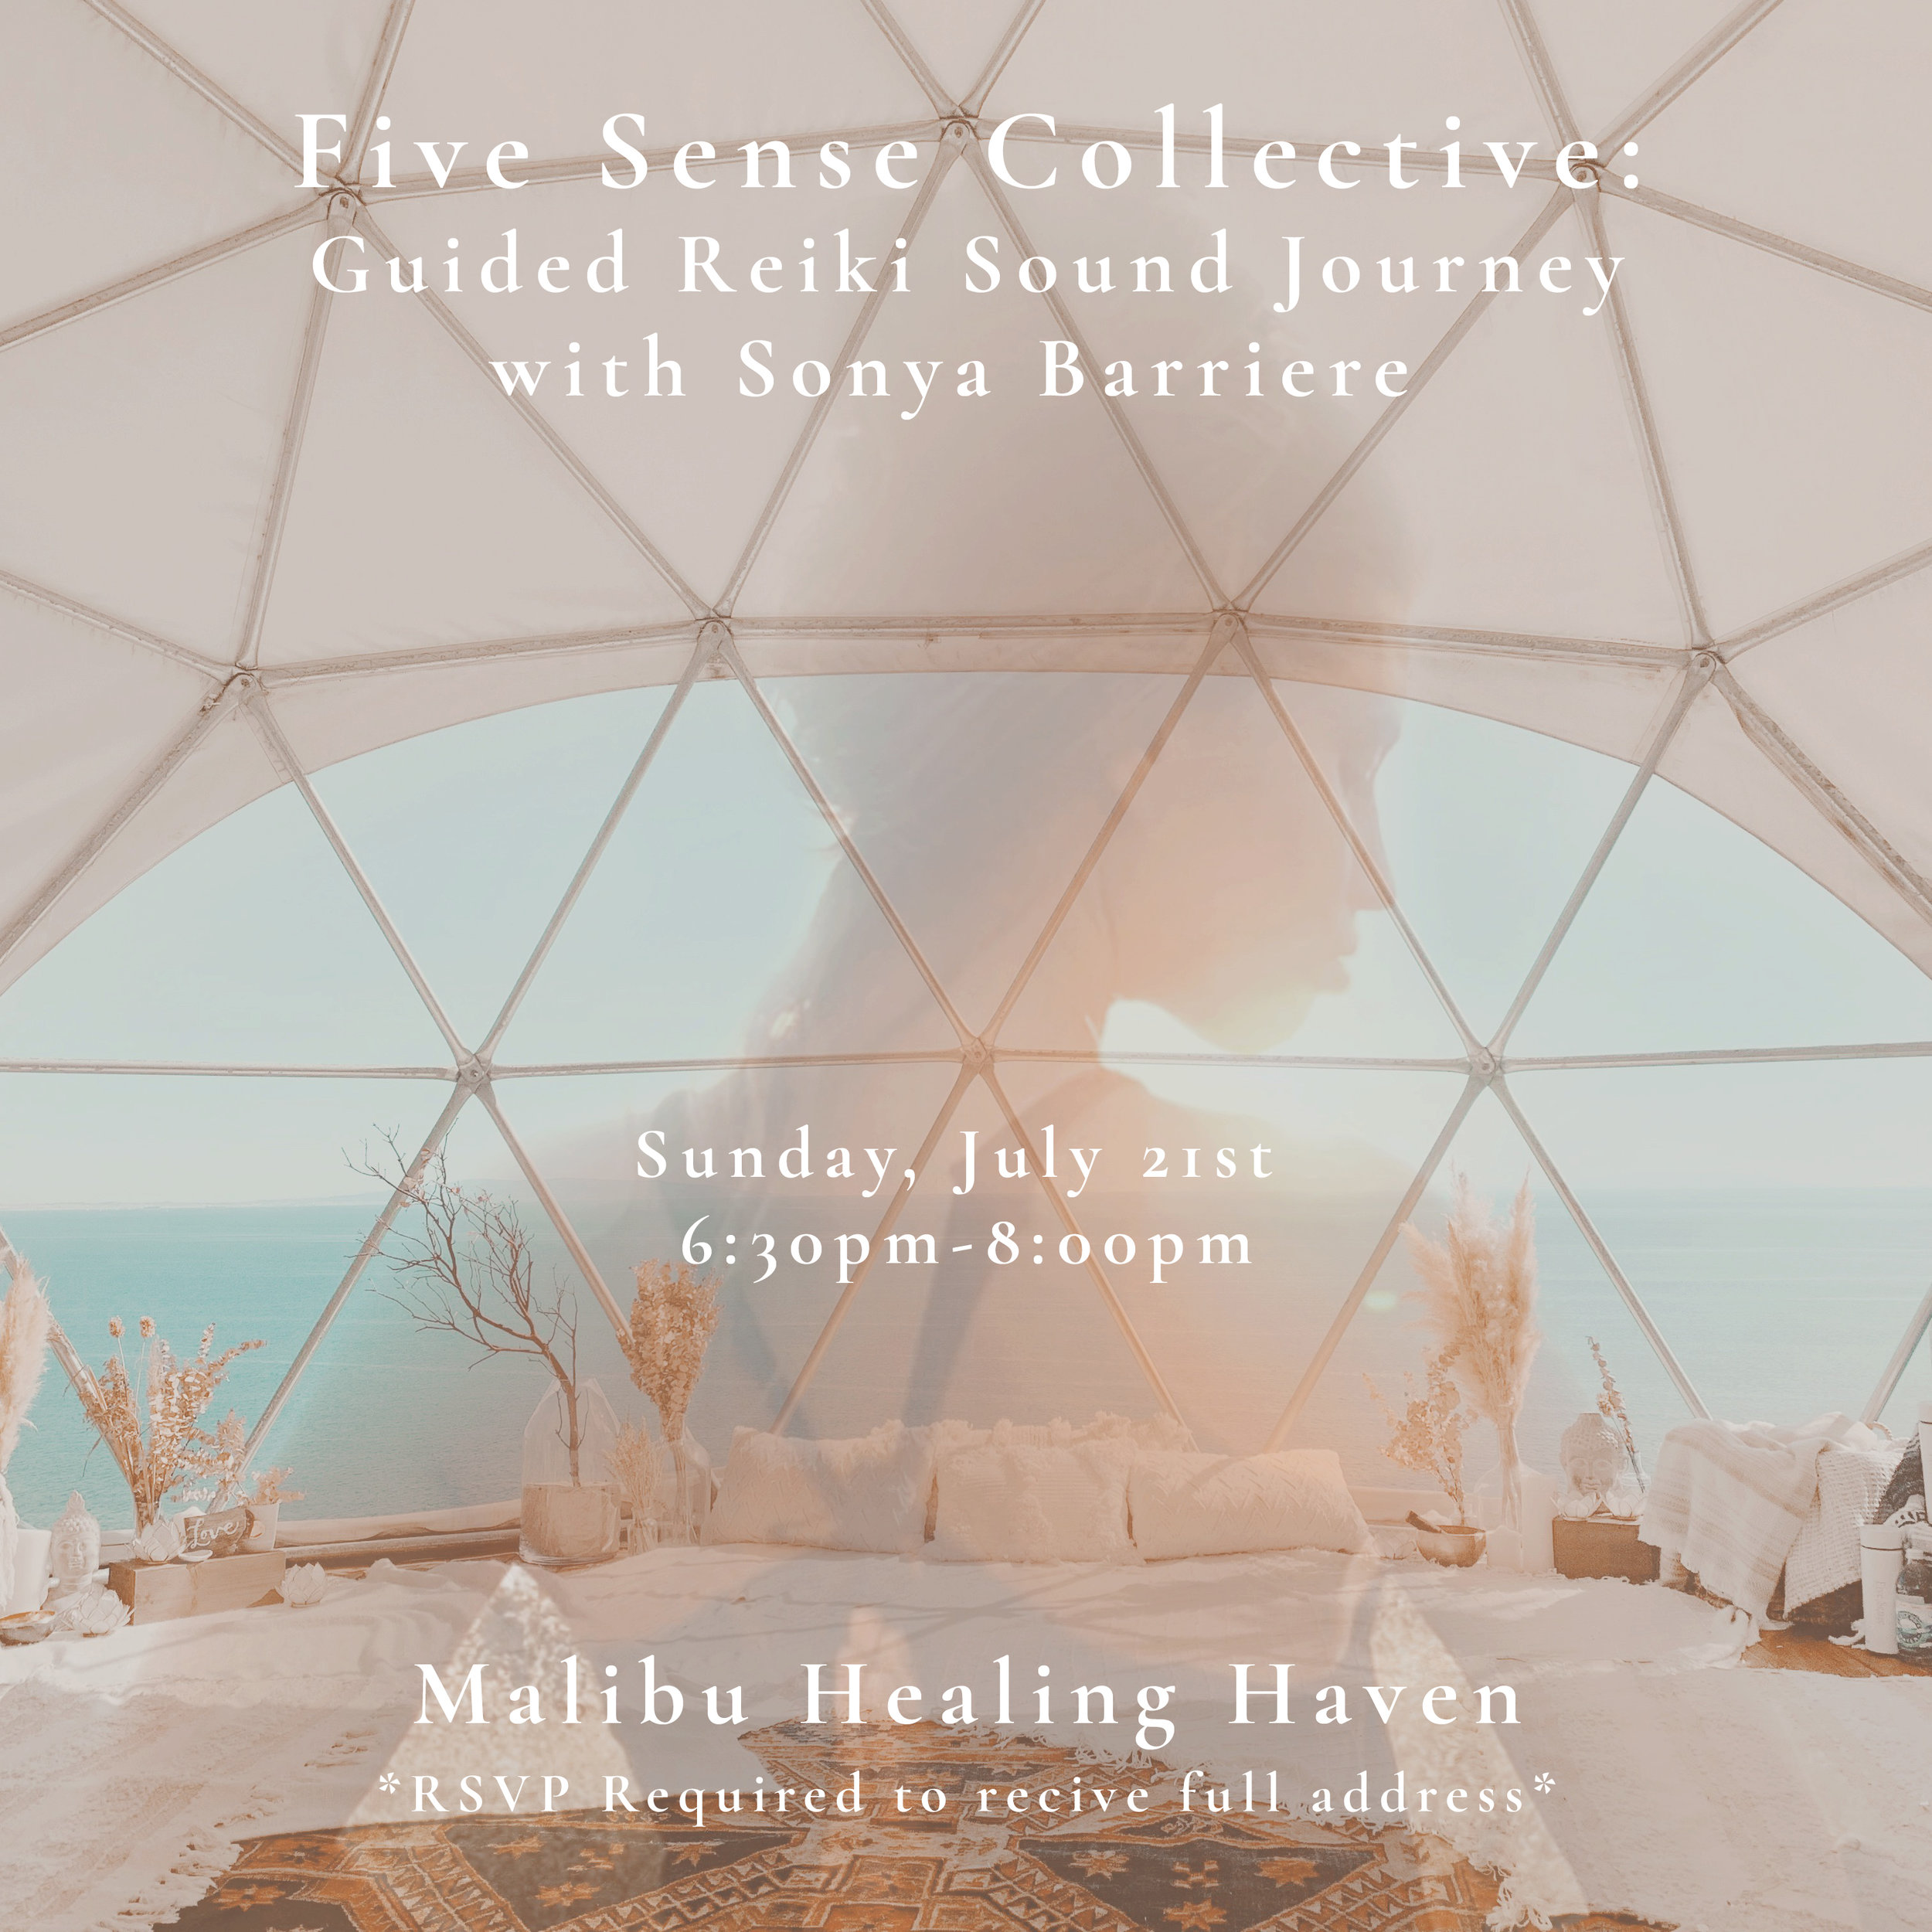 sonya721+malibu+healing+haven+five+sense+collective+sound.jpg